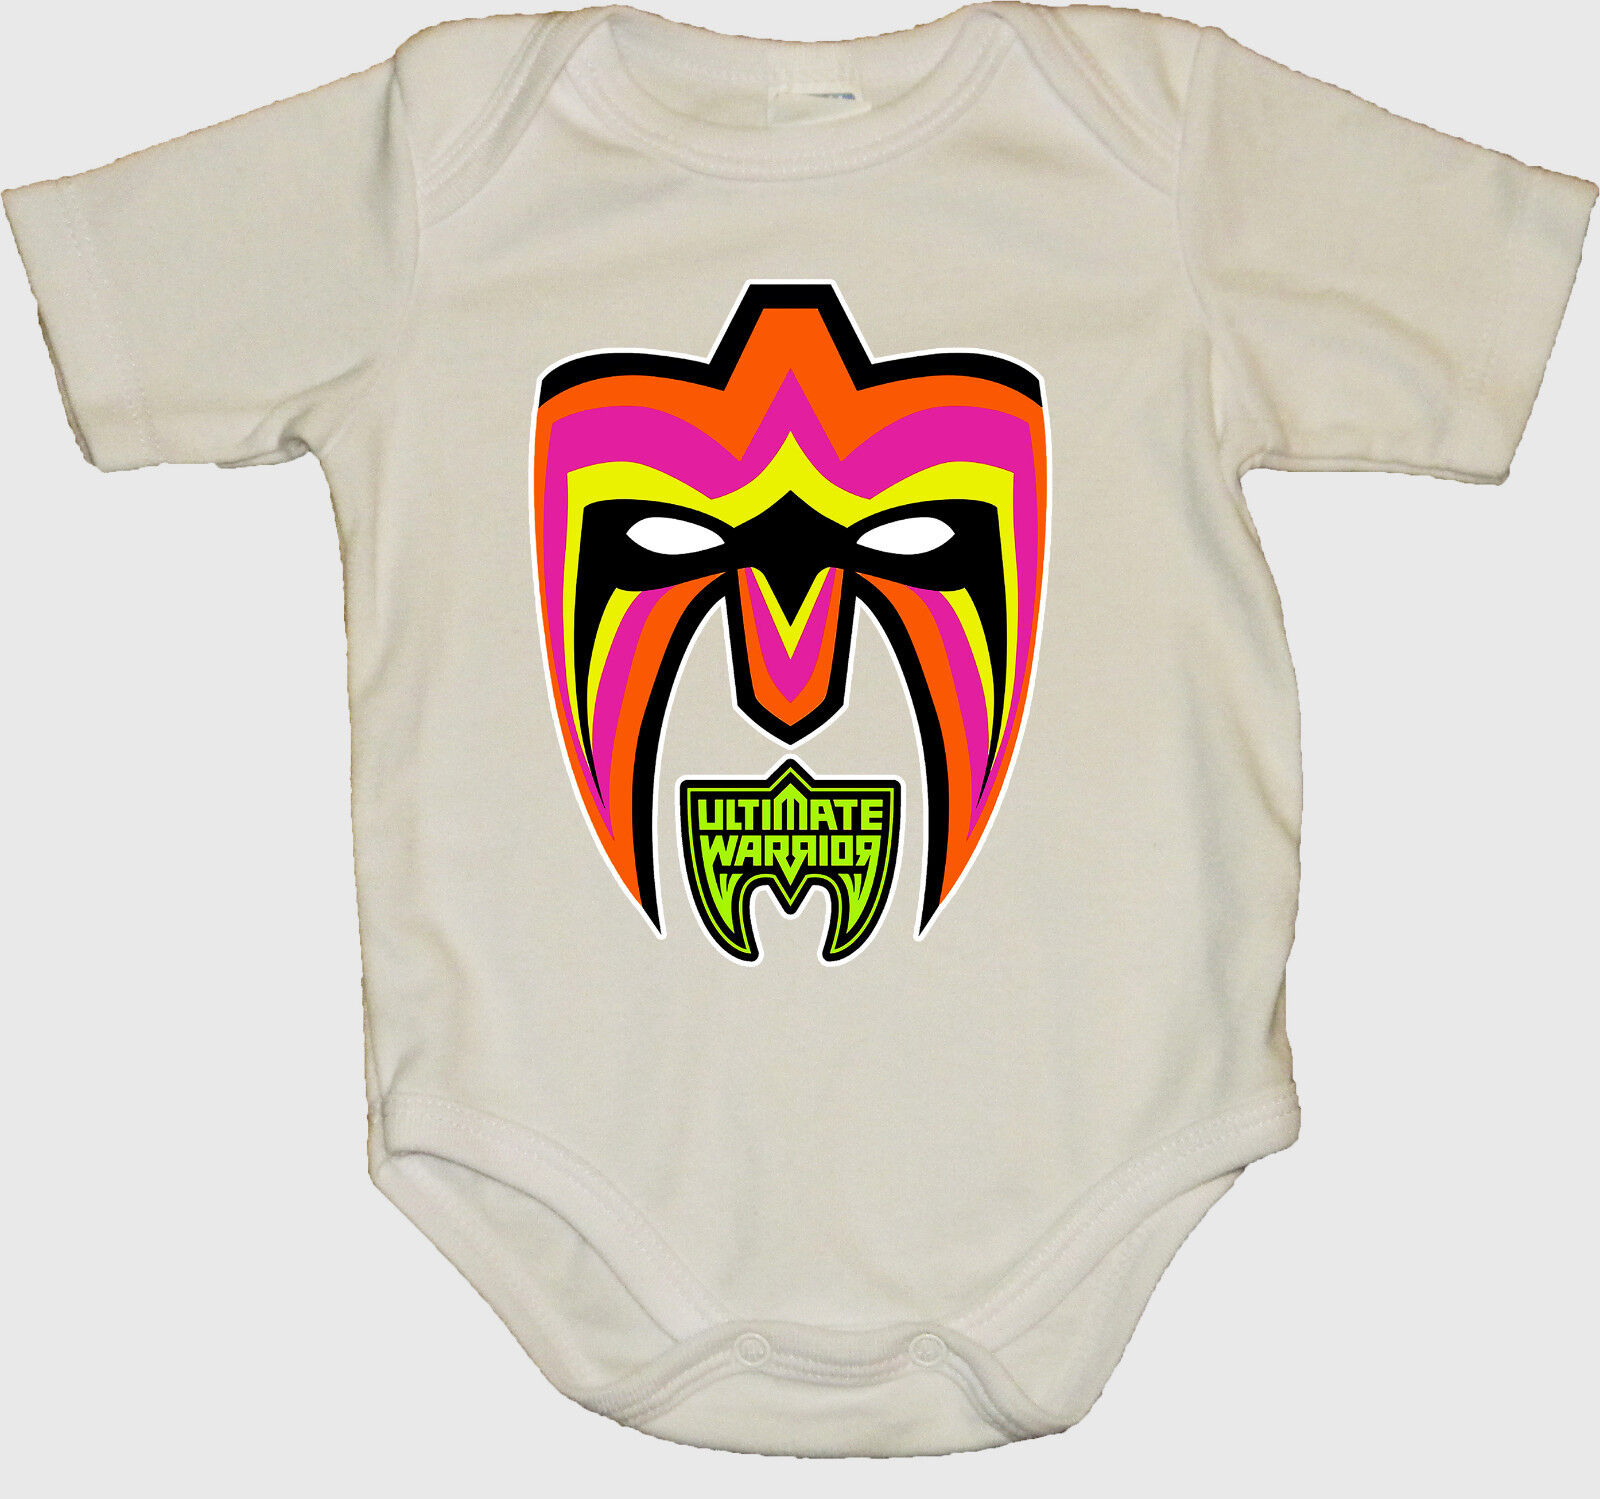 Ultimate Warrior Wwe Baby Creeper Bodysuits